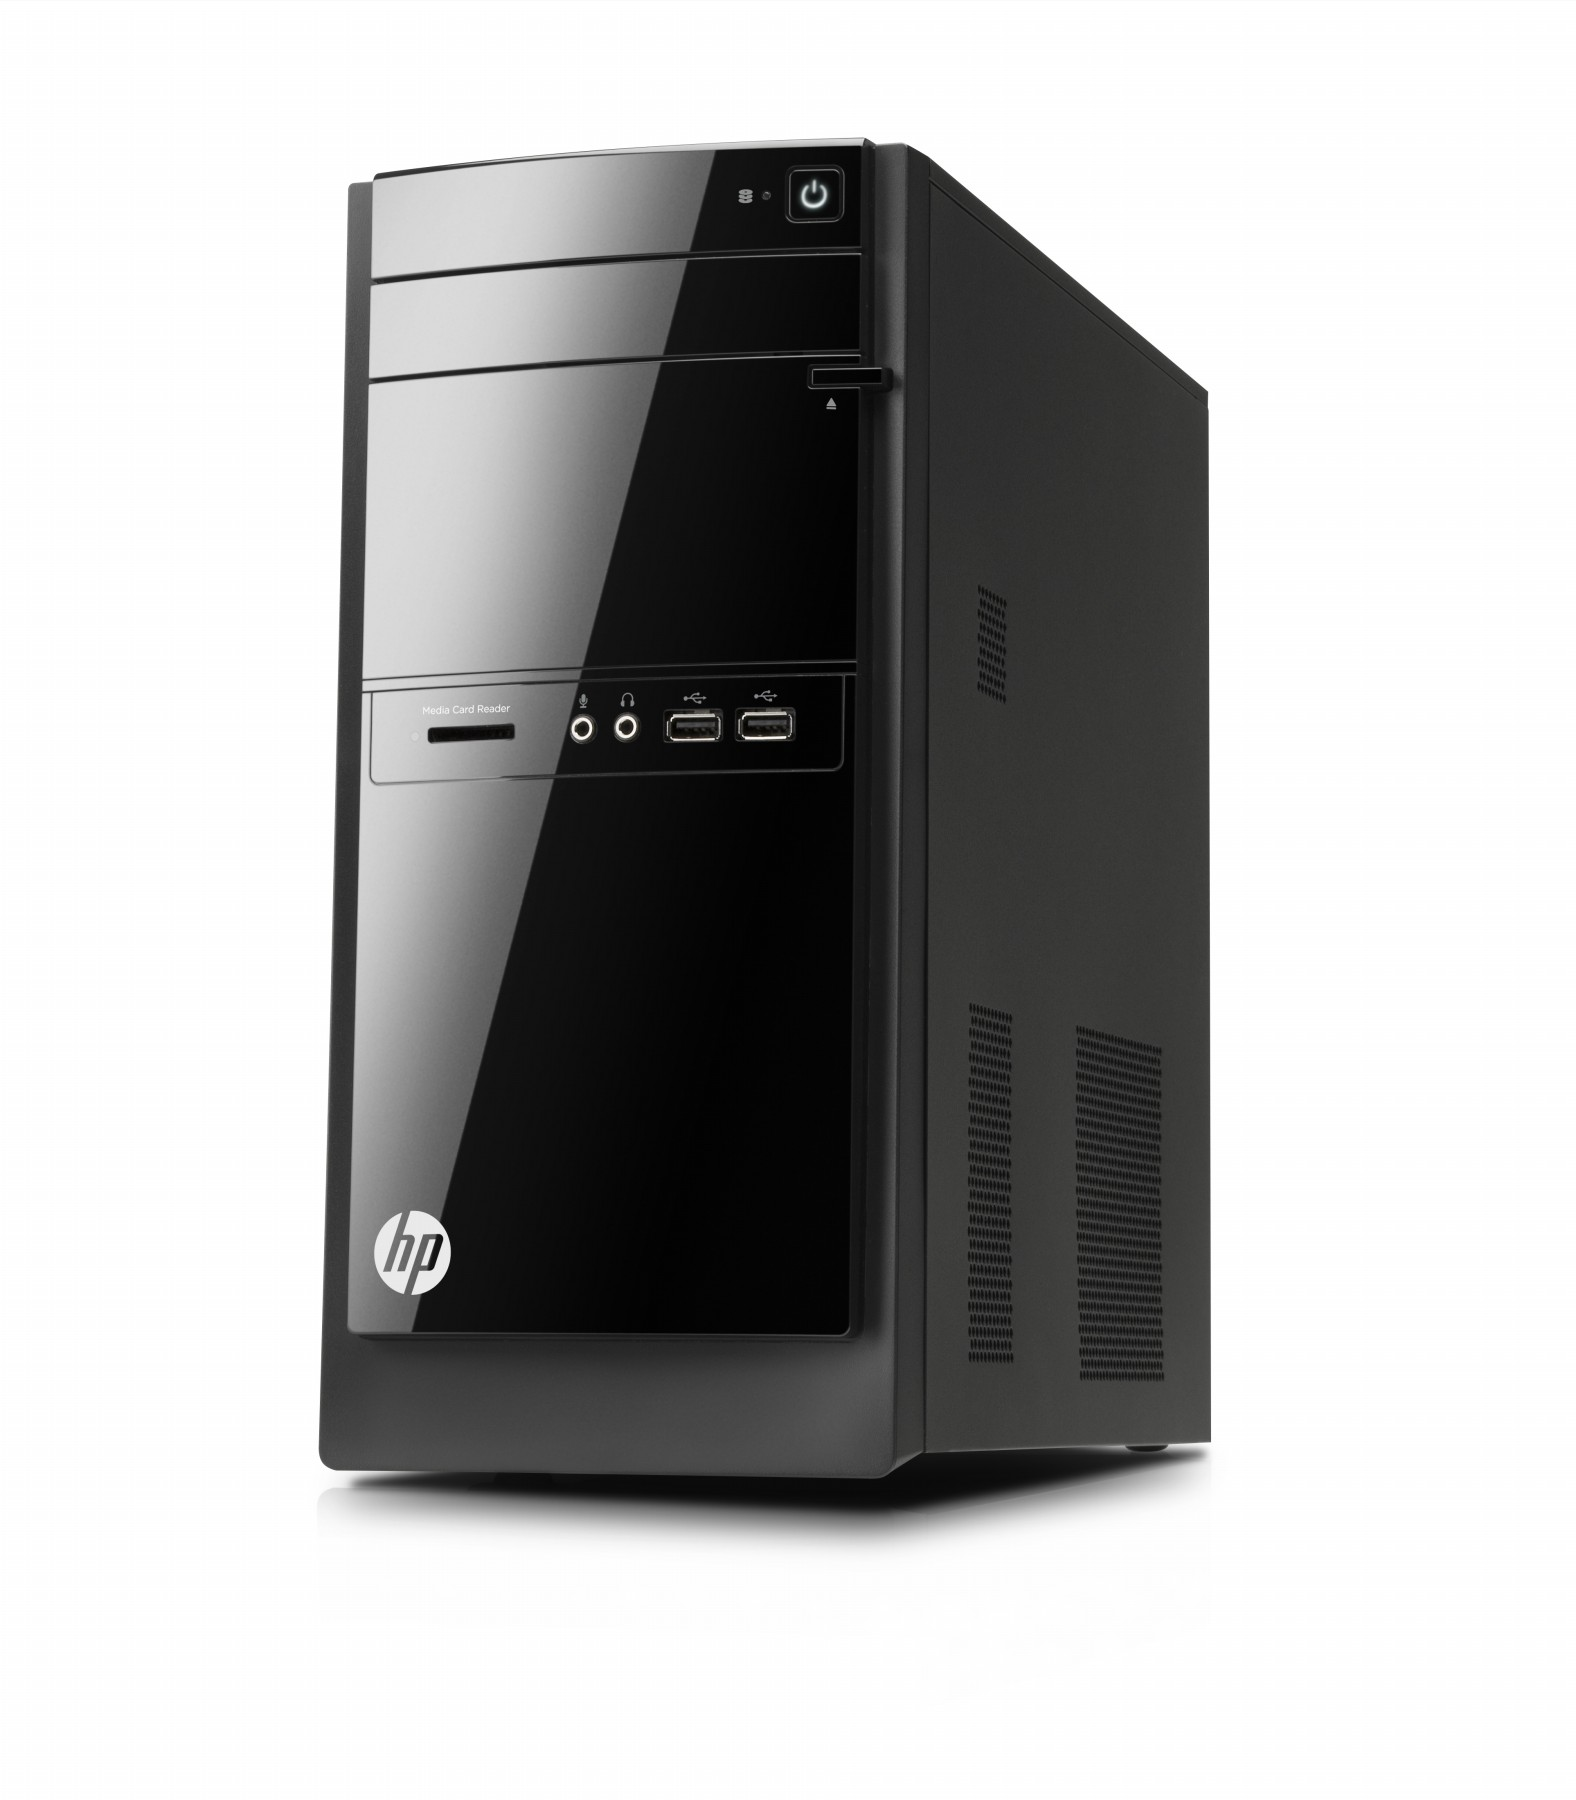 Hp 110 526nf offre avril - Comparateur de bureau de change ...